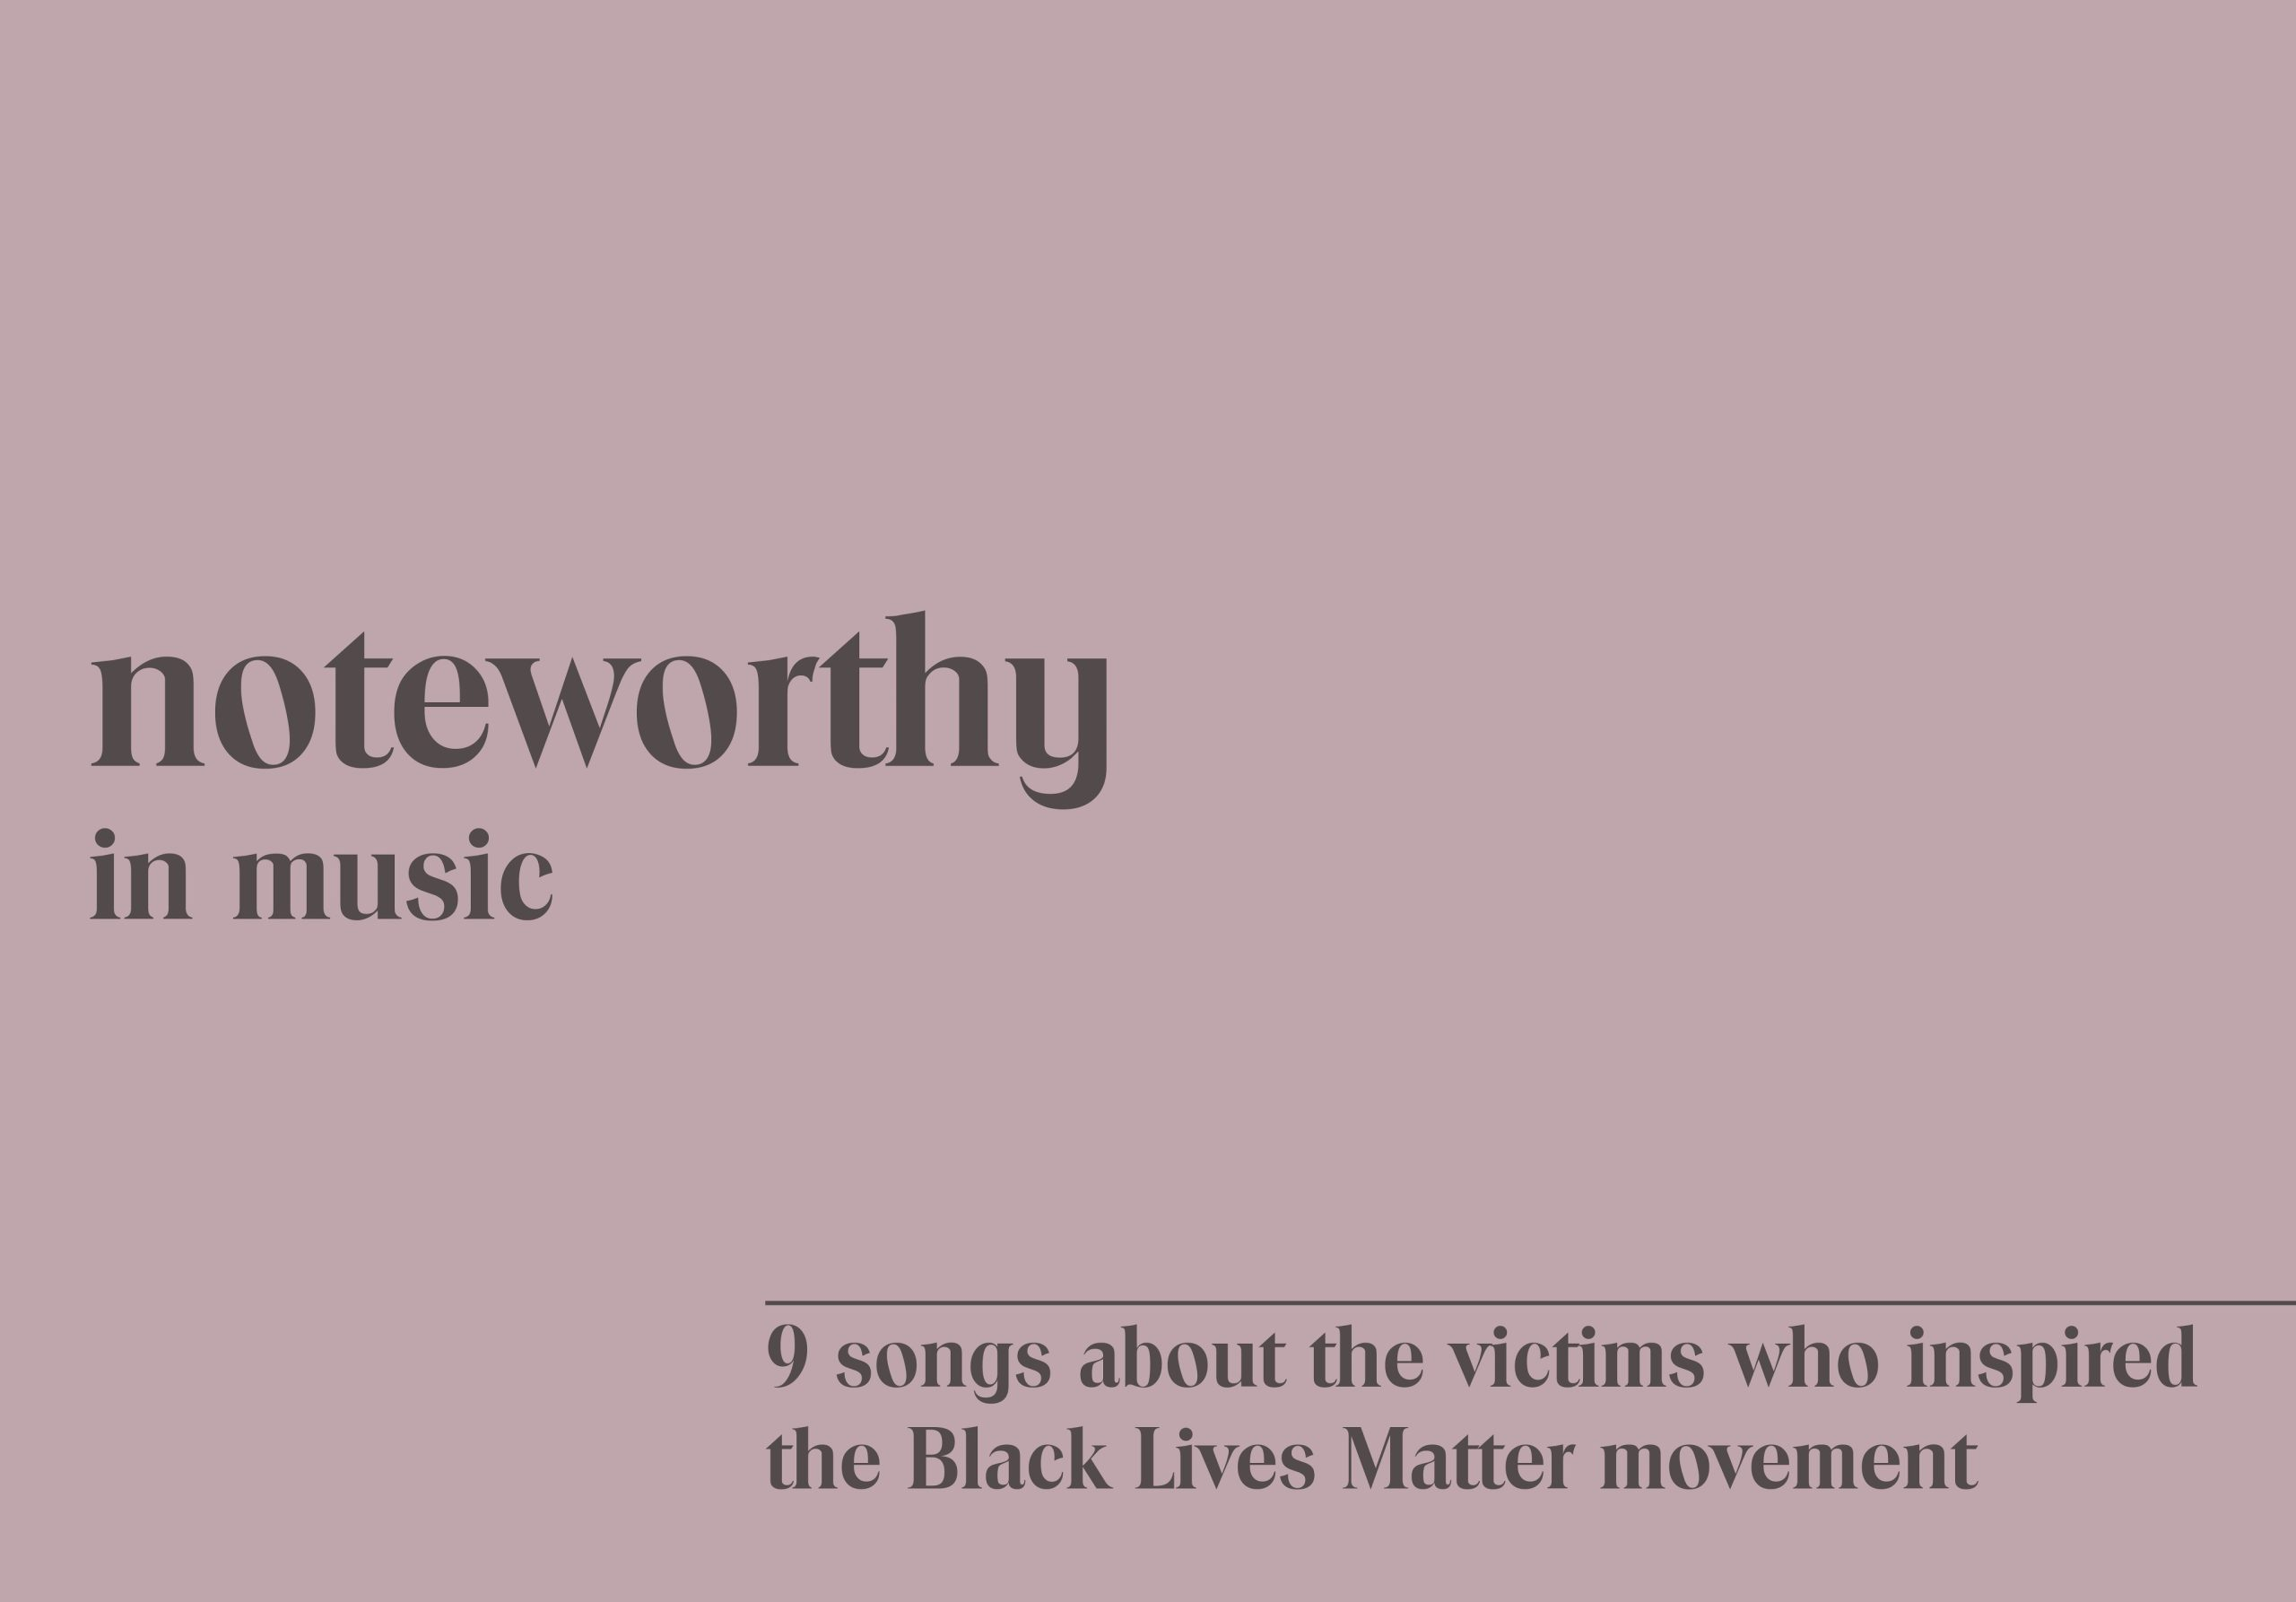 Black Lives Matter Songs About Those Who Inspired the Movement